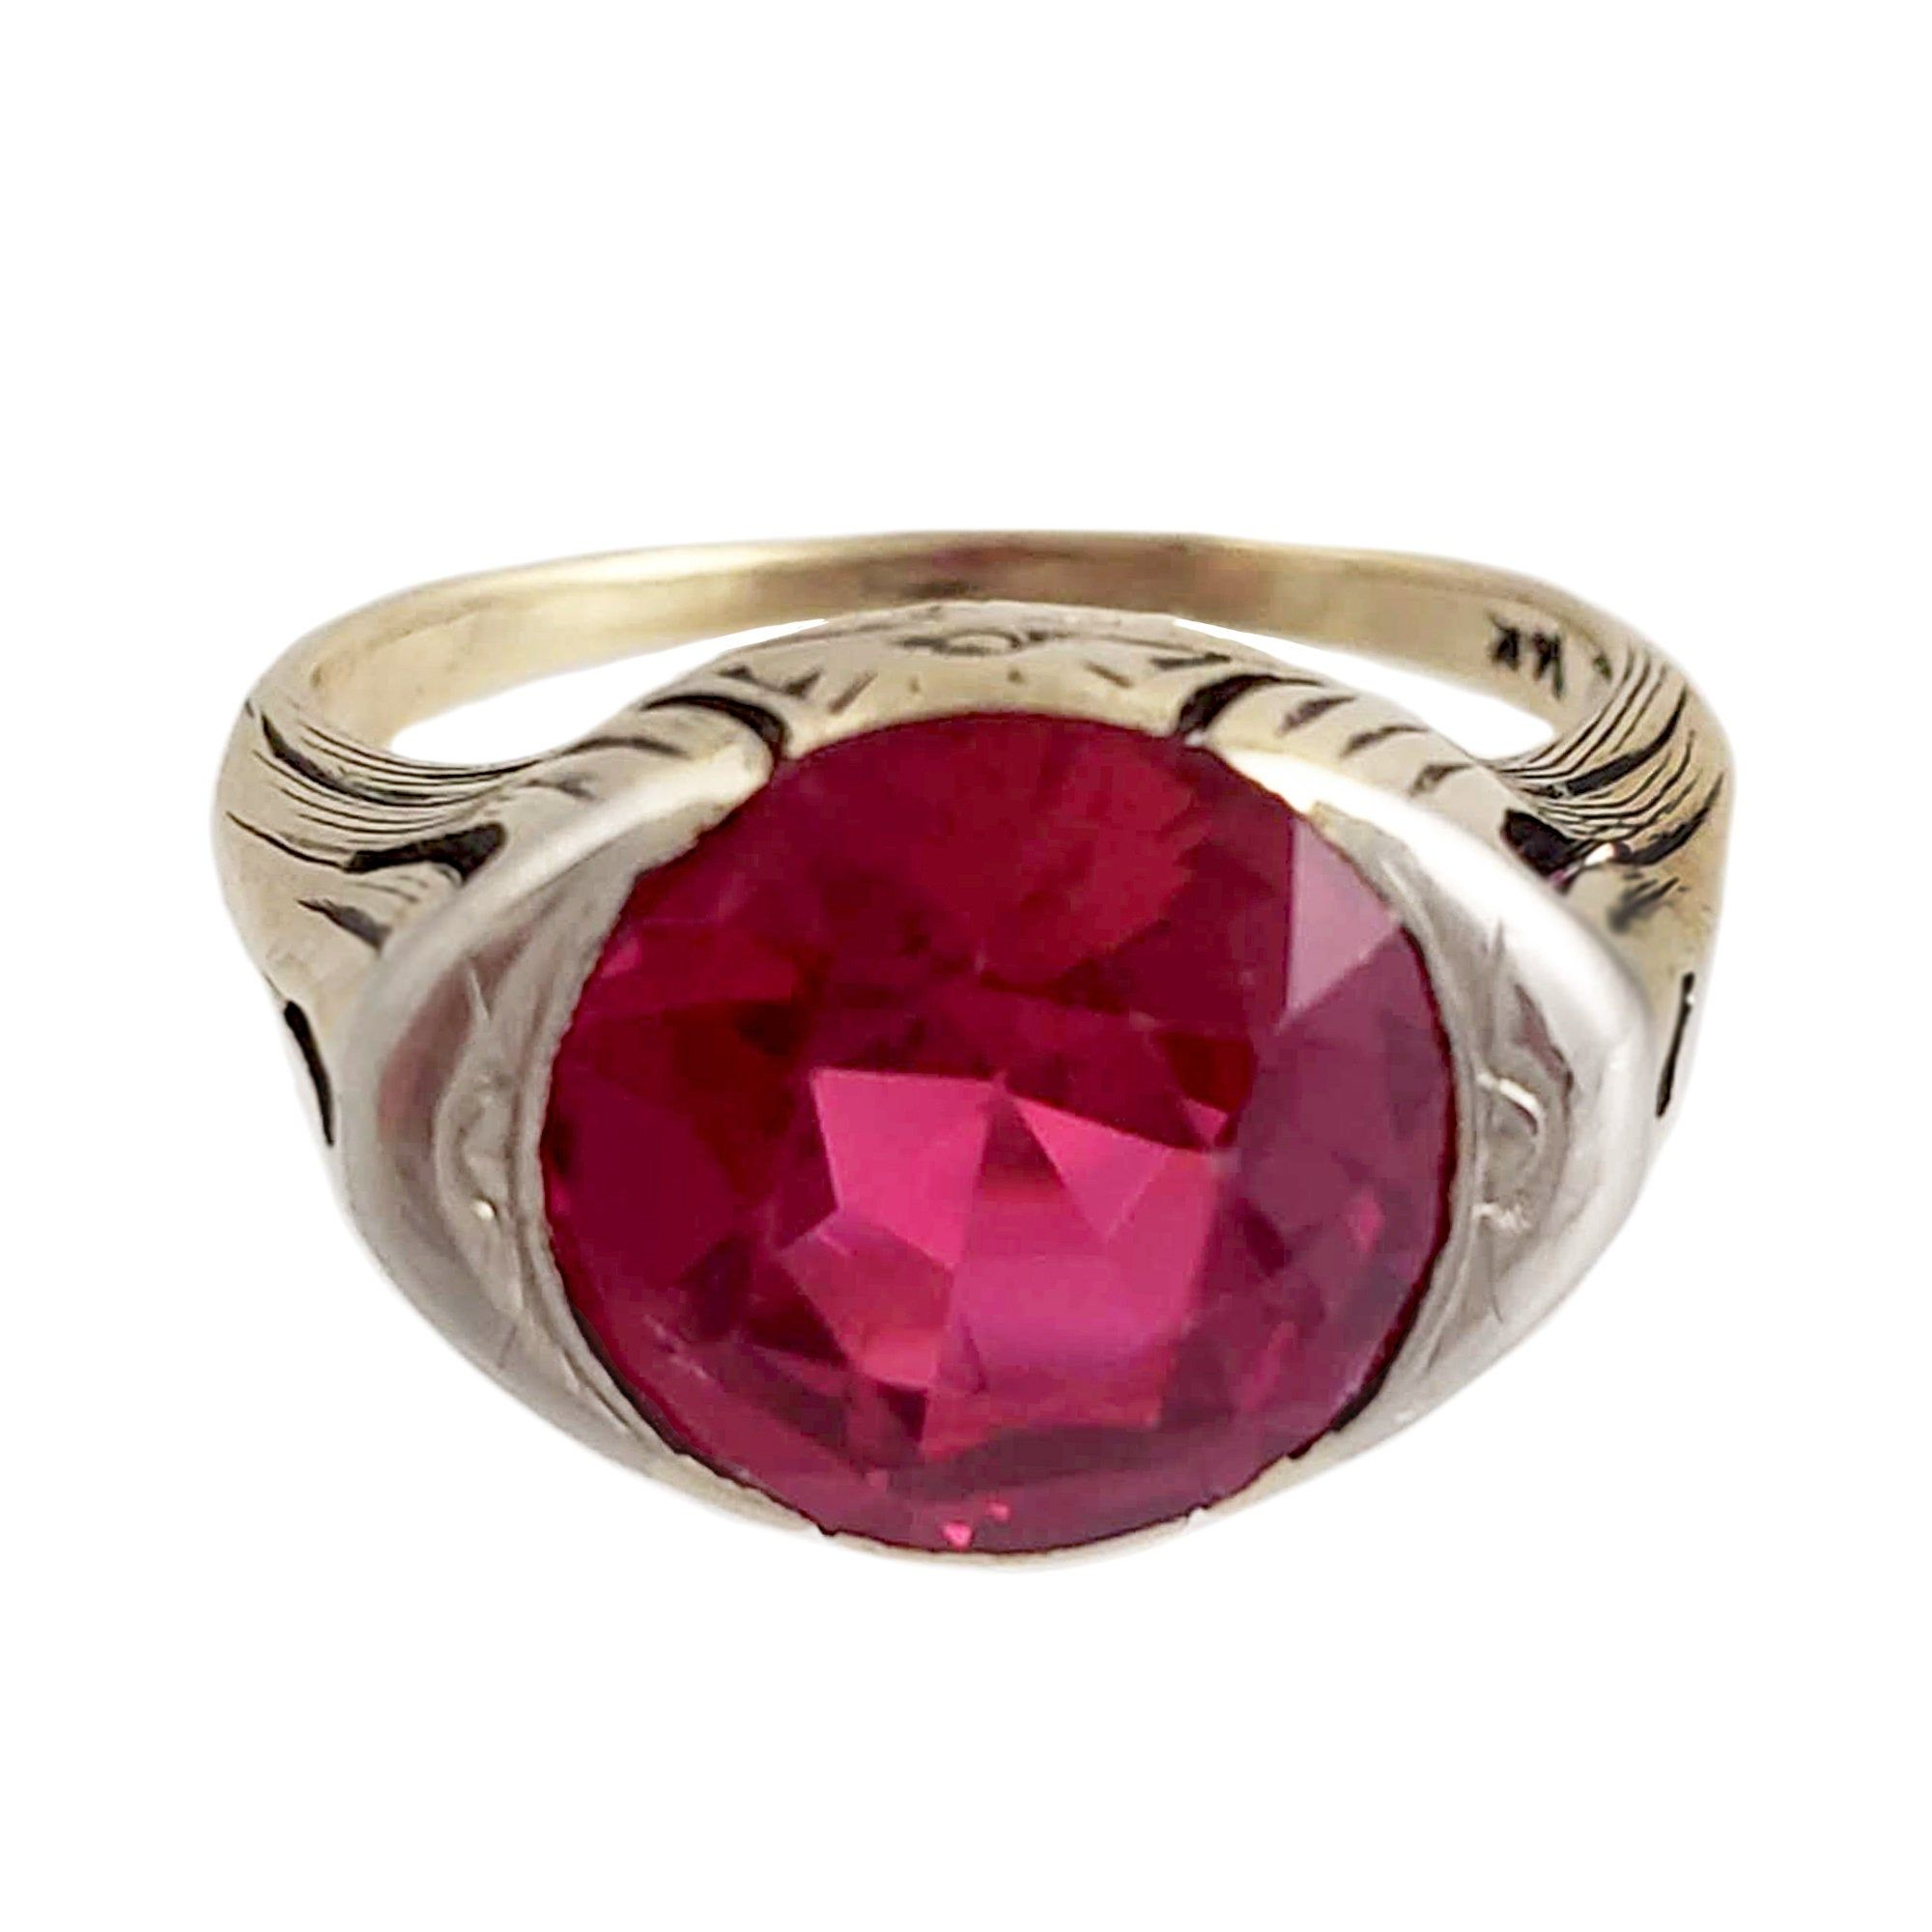 Lucky Gemstone Round Faceted Garnet Ring Good Jewellery Items Gift for Graduation Good Rings 925 Silver Red Garnet Lucky Gemstone Ring